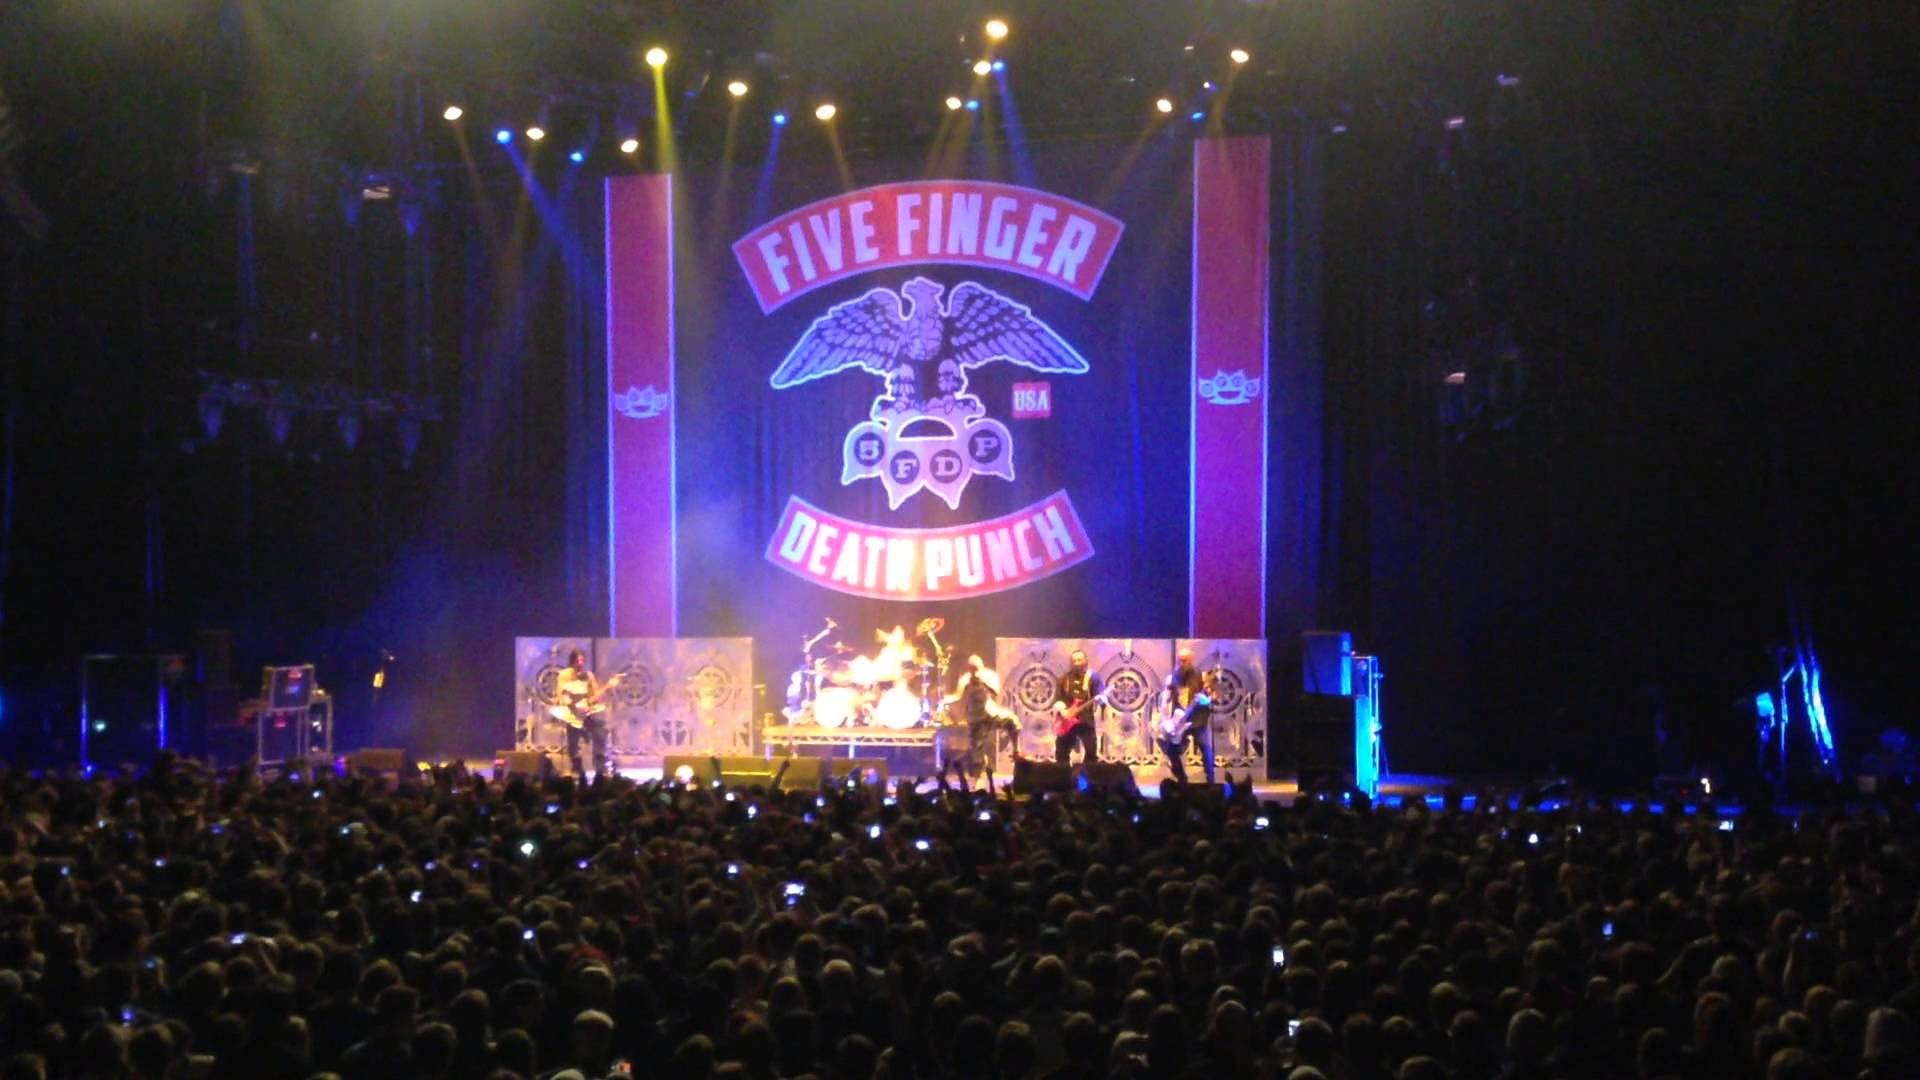 1920x1080 Five finger death punch - Under and over it Live Oslo spectrum Norway 9  november HD 1080p